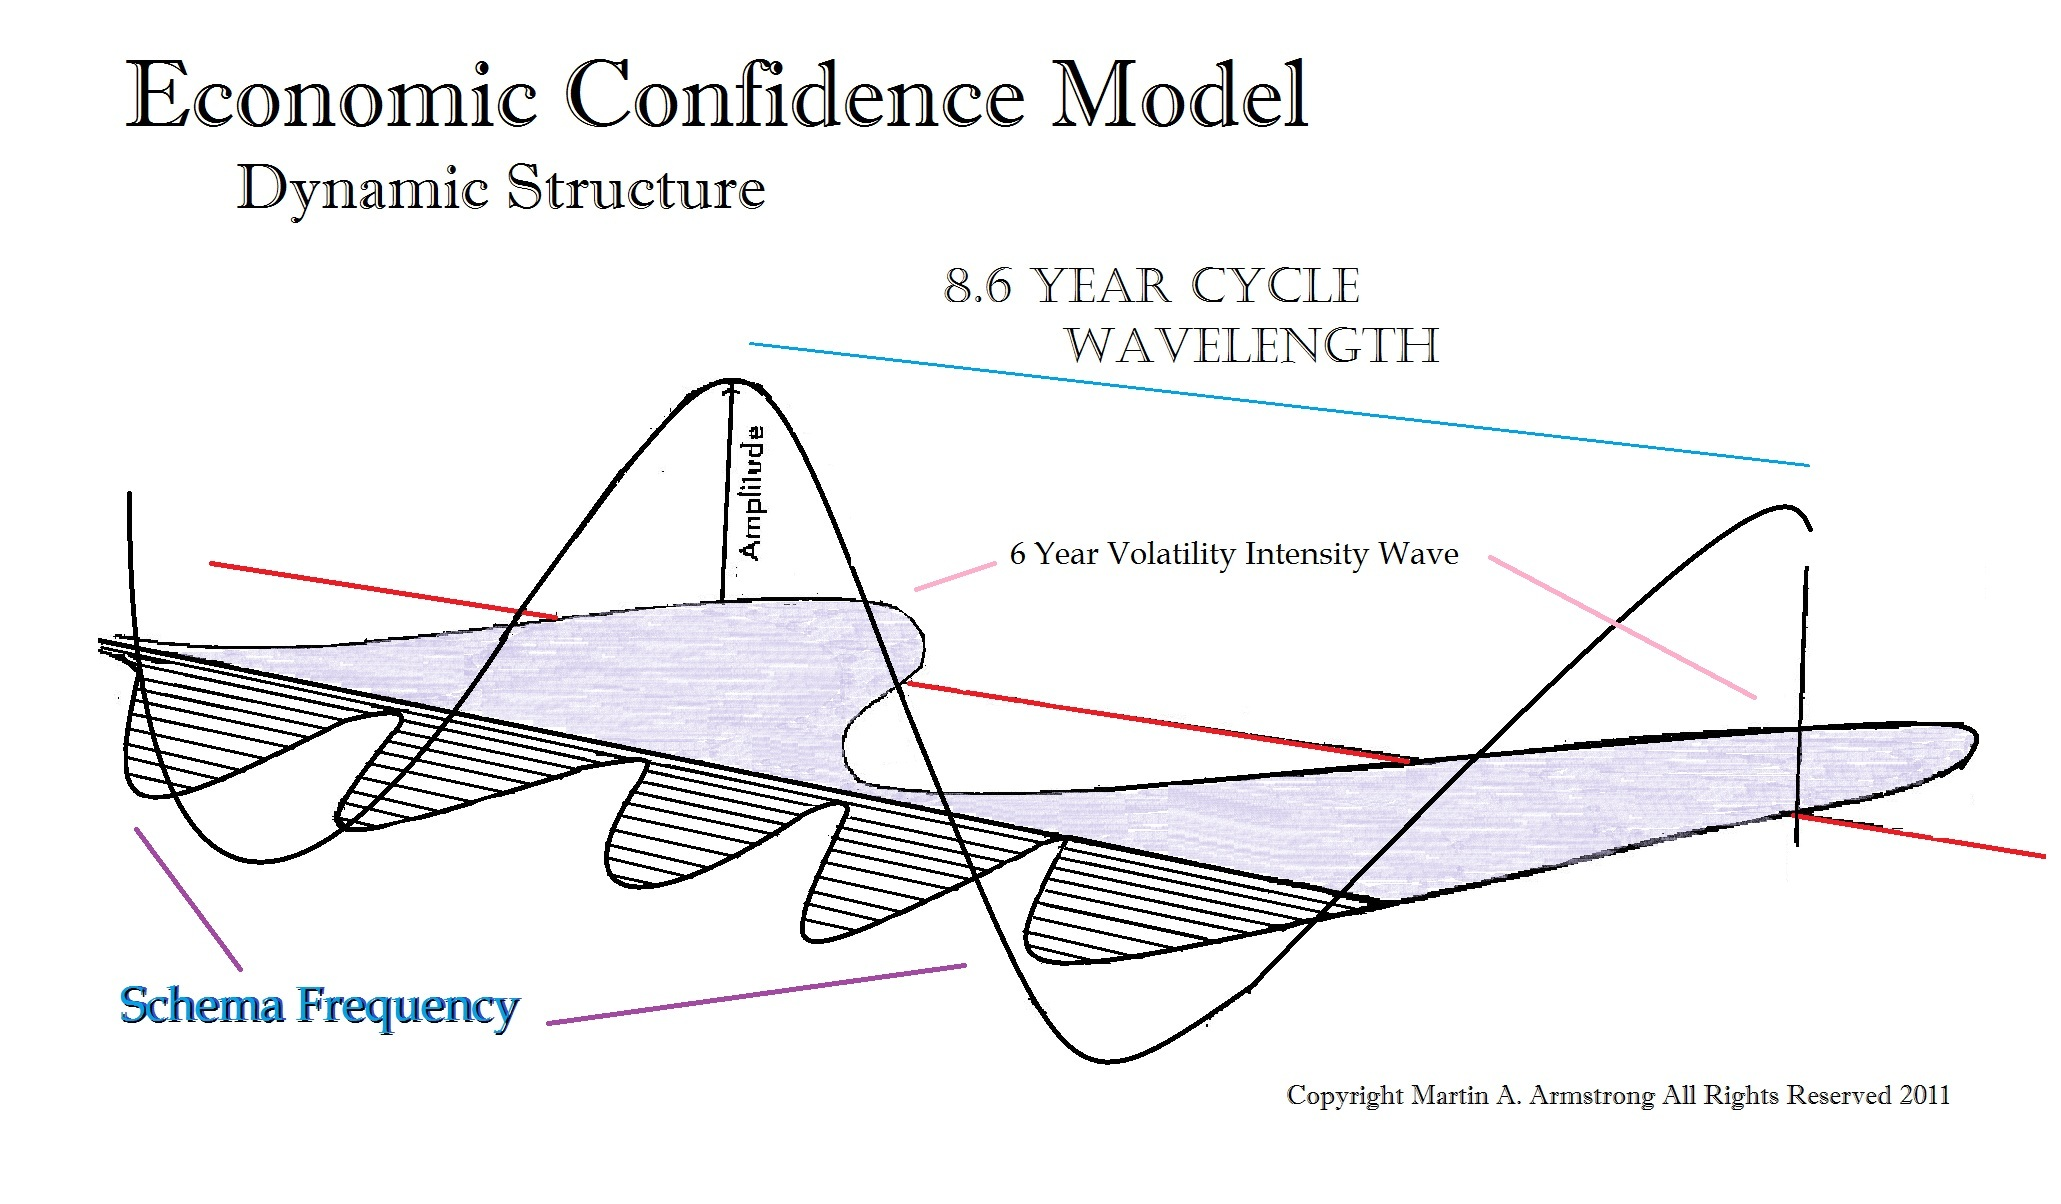 """kondratieff cycle thesis Technological innovations of the period the up phase of the 1st kondratieff cycle (1790-1813)  the """"kondratieff cycles"""" in shipping economy since 1741 and ."""